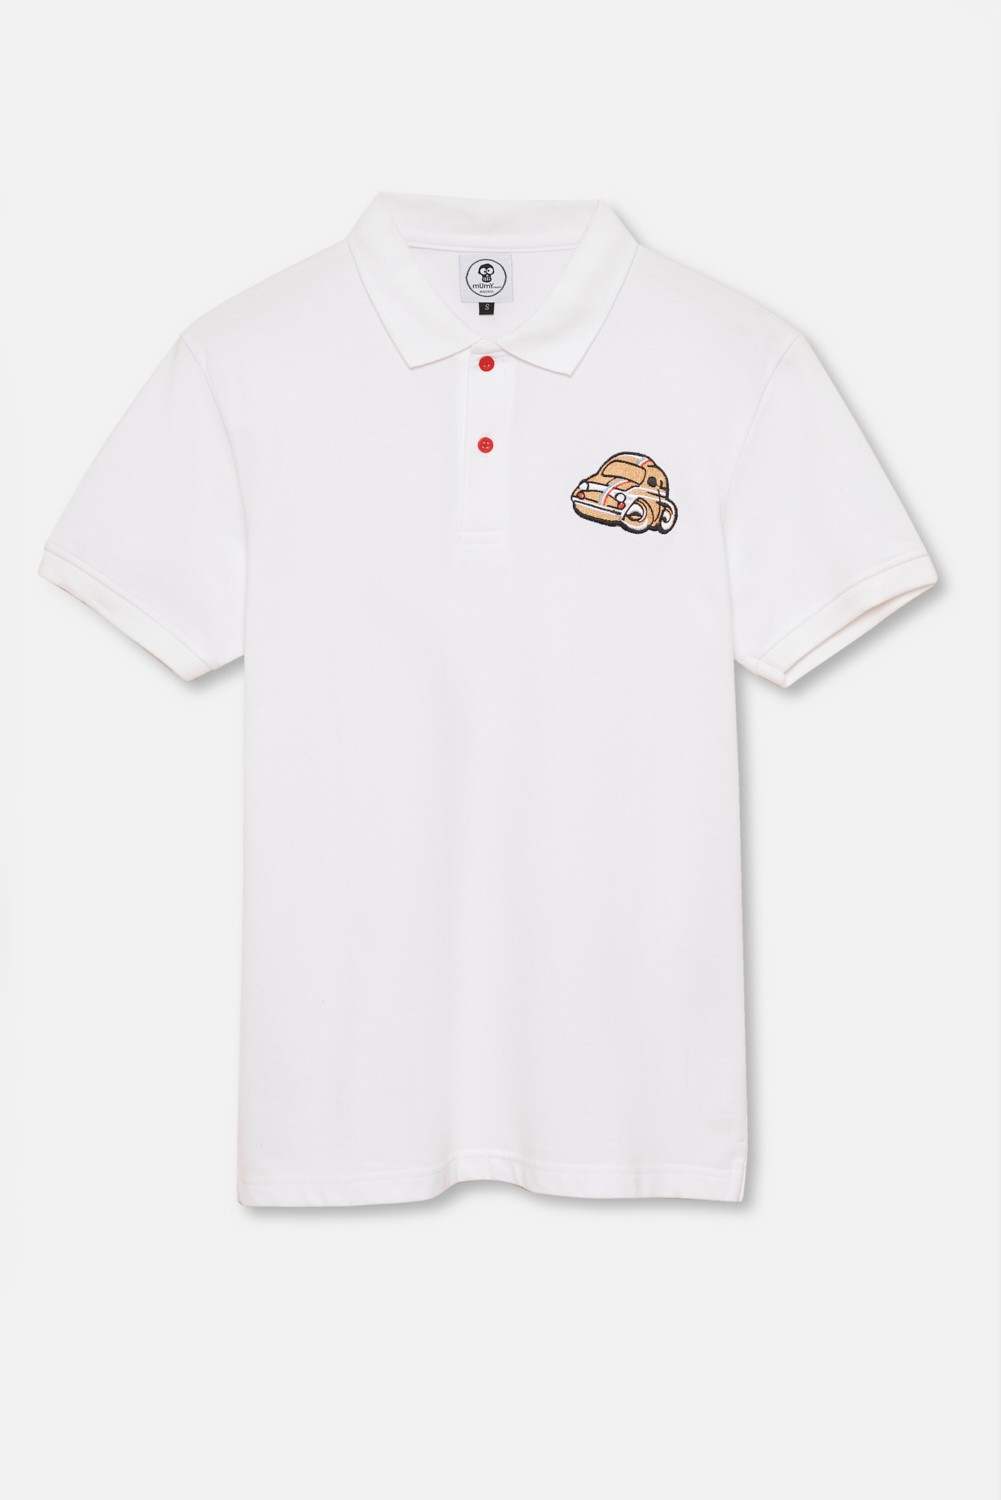 ADULT´S EMBROIDERED POLO GOLD BEETLE IN WHITE